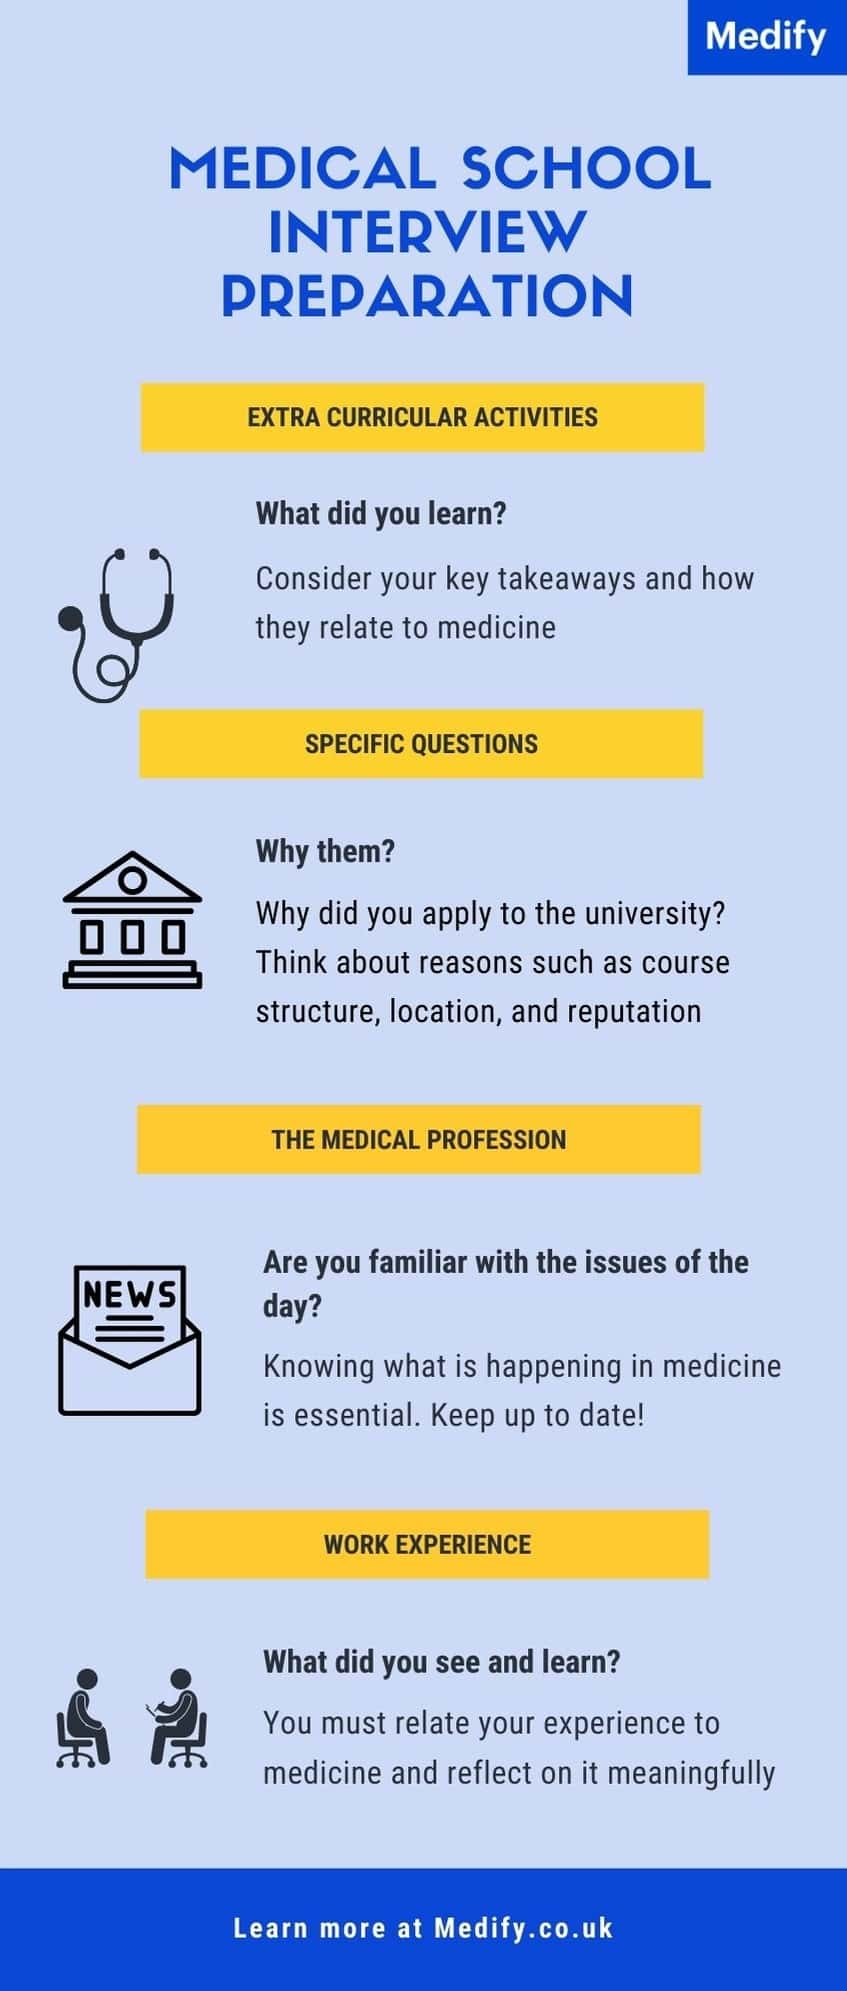 Medical school preparation: Extra curricular activities, specific questions, the medical profession, work experience. Medify.co.uk.